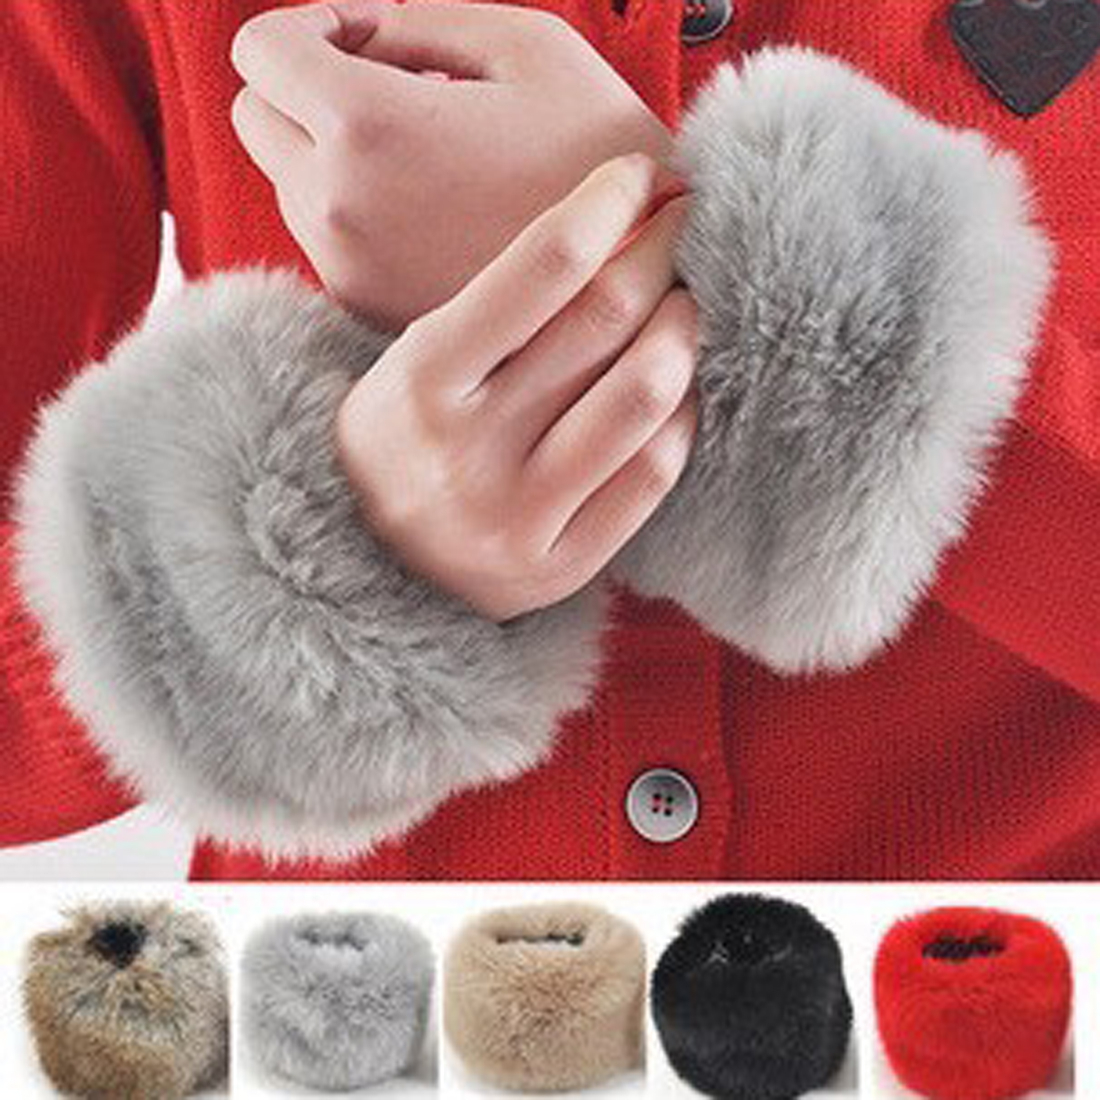 Fashion Winter Warm Faux Fur Elastic Wrist Slap On Cuffs For Women Ladies 1 Pair Solid Color Arm Warmer Plush Wrist Protector